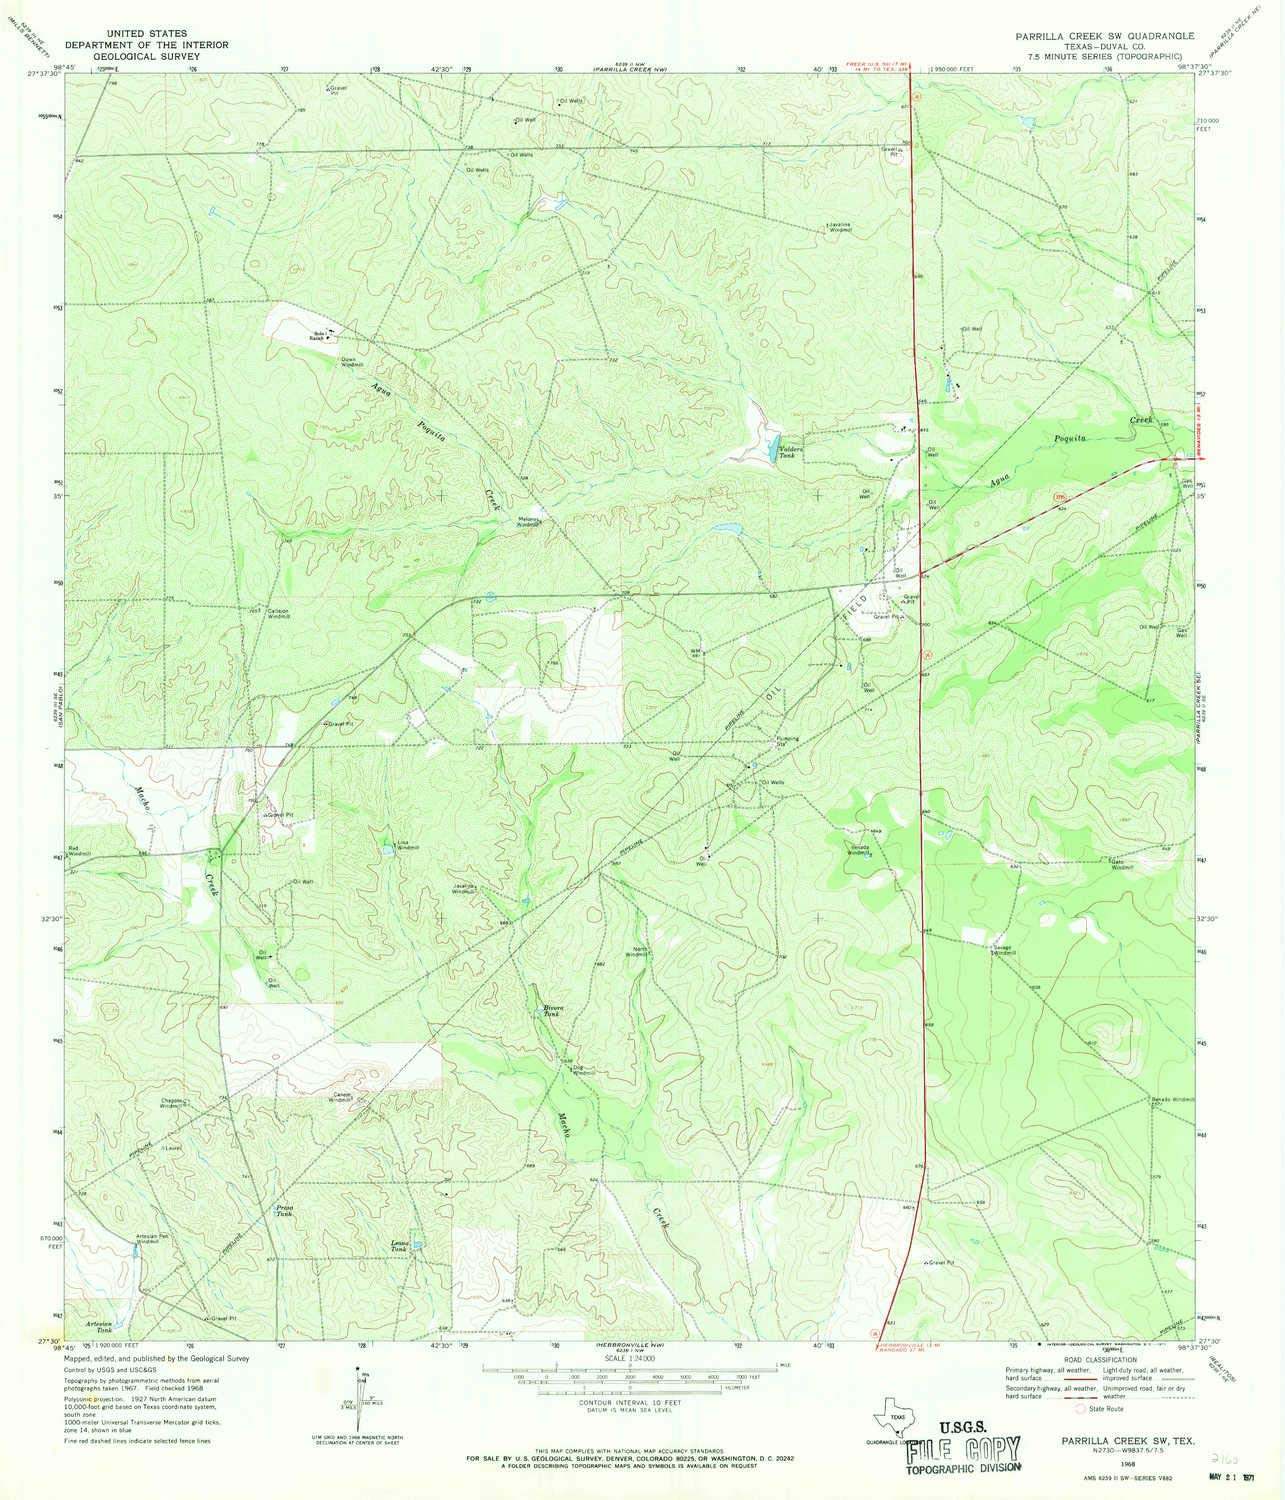 Amazon.com : YellowMaps Parrilla Creek SW TX topo map, 1 ...